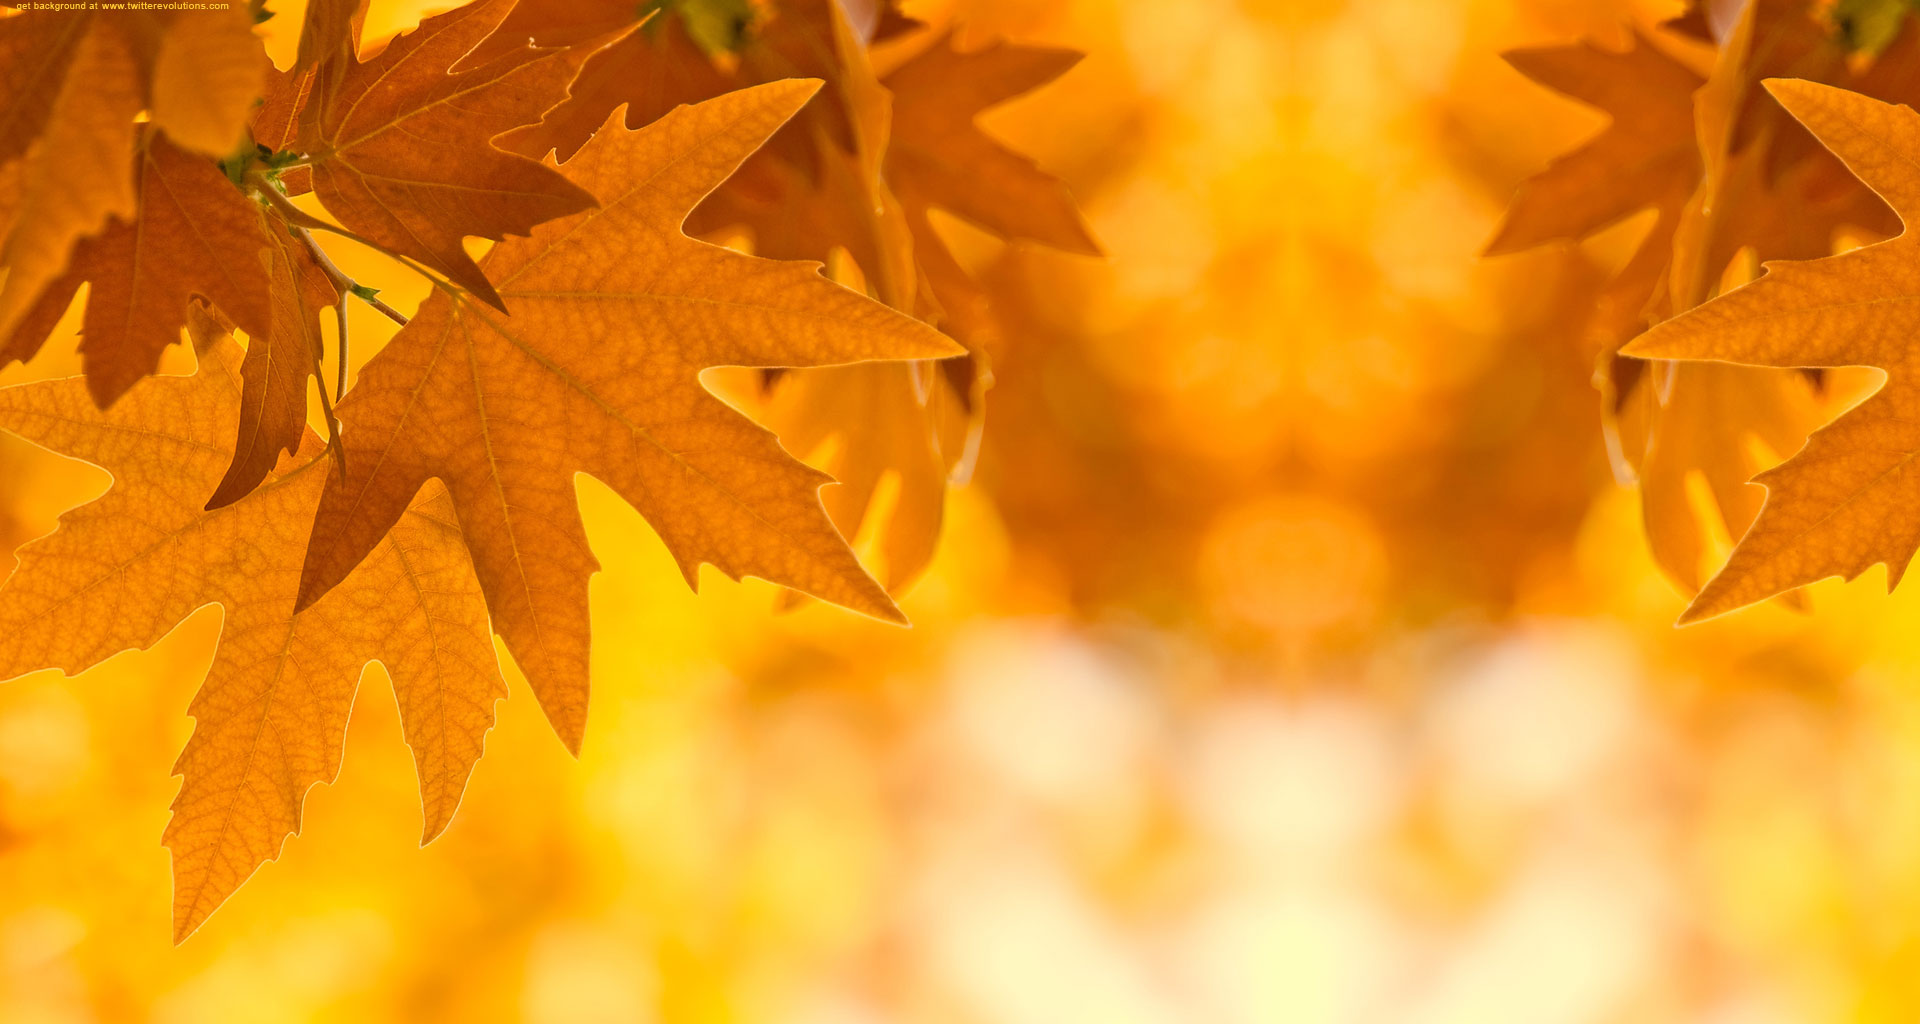 Autumn Leaves Twitter Background Backgrounds ~ Fall Leaves Background